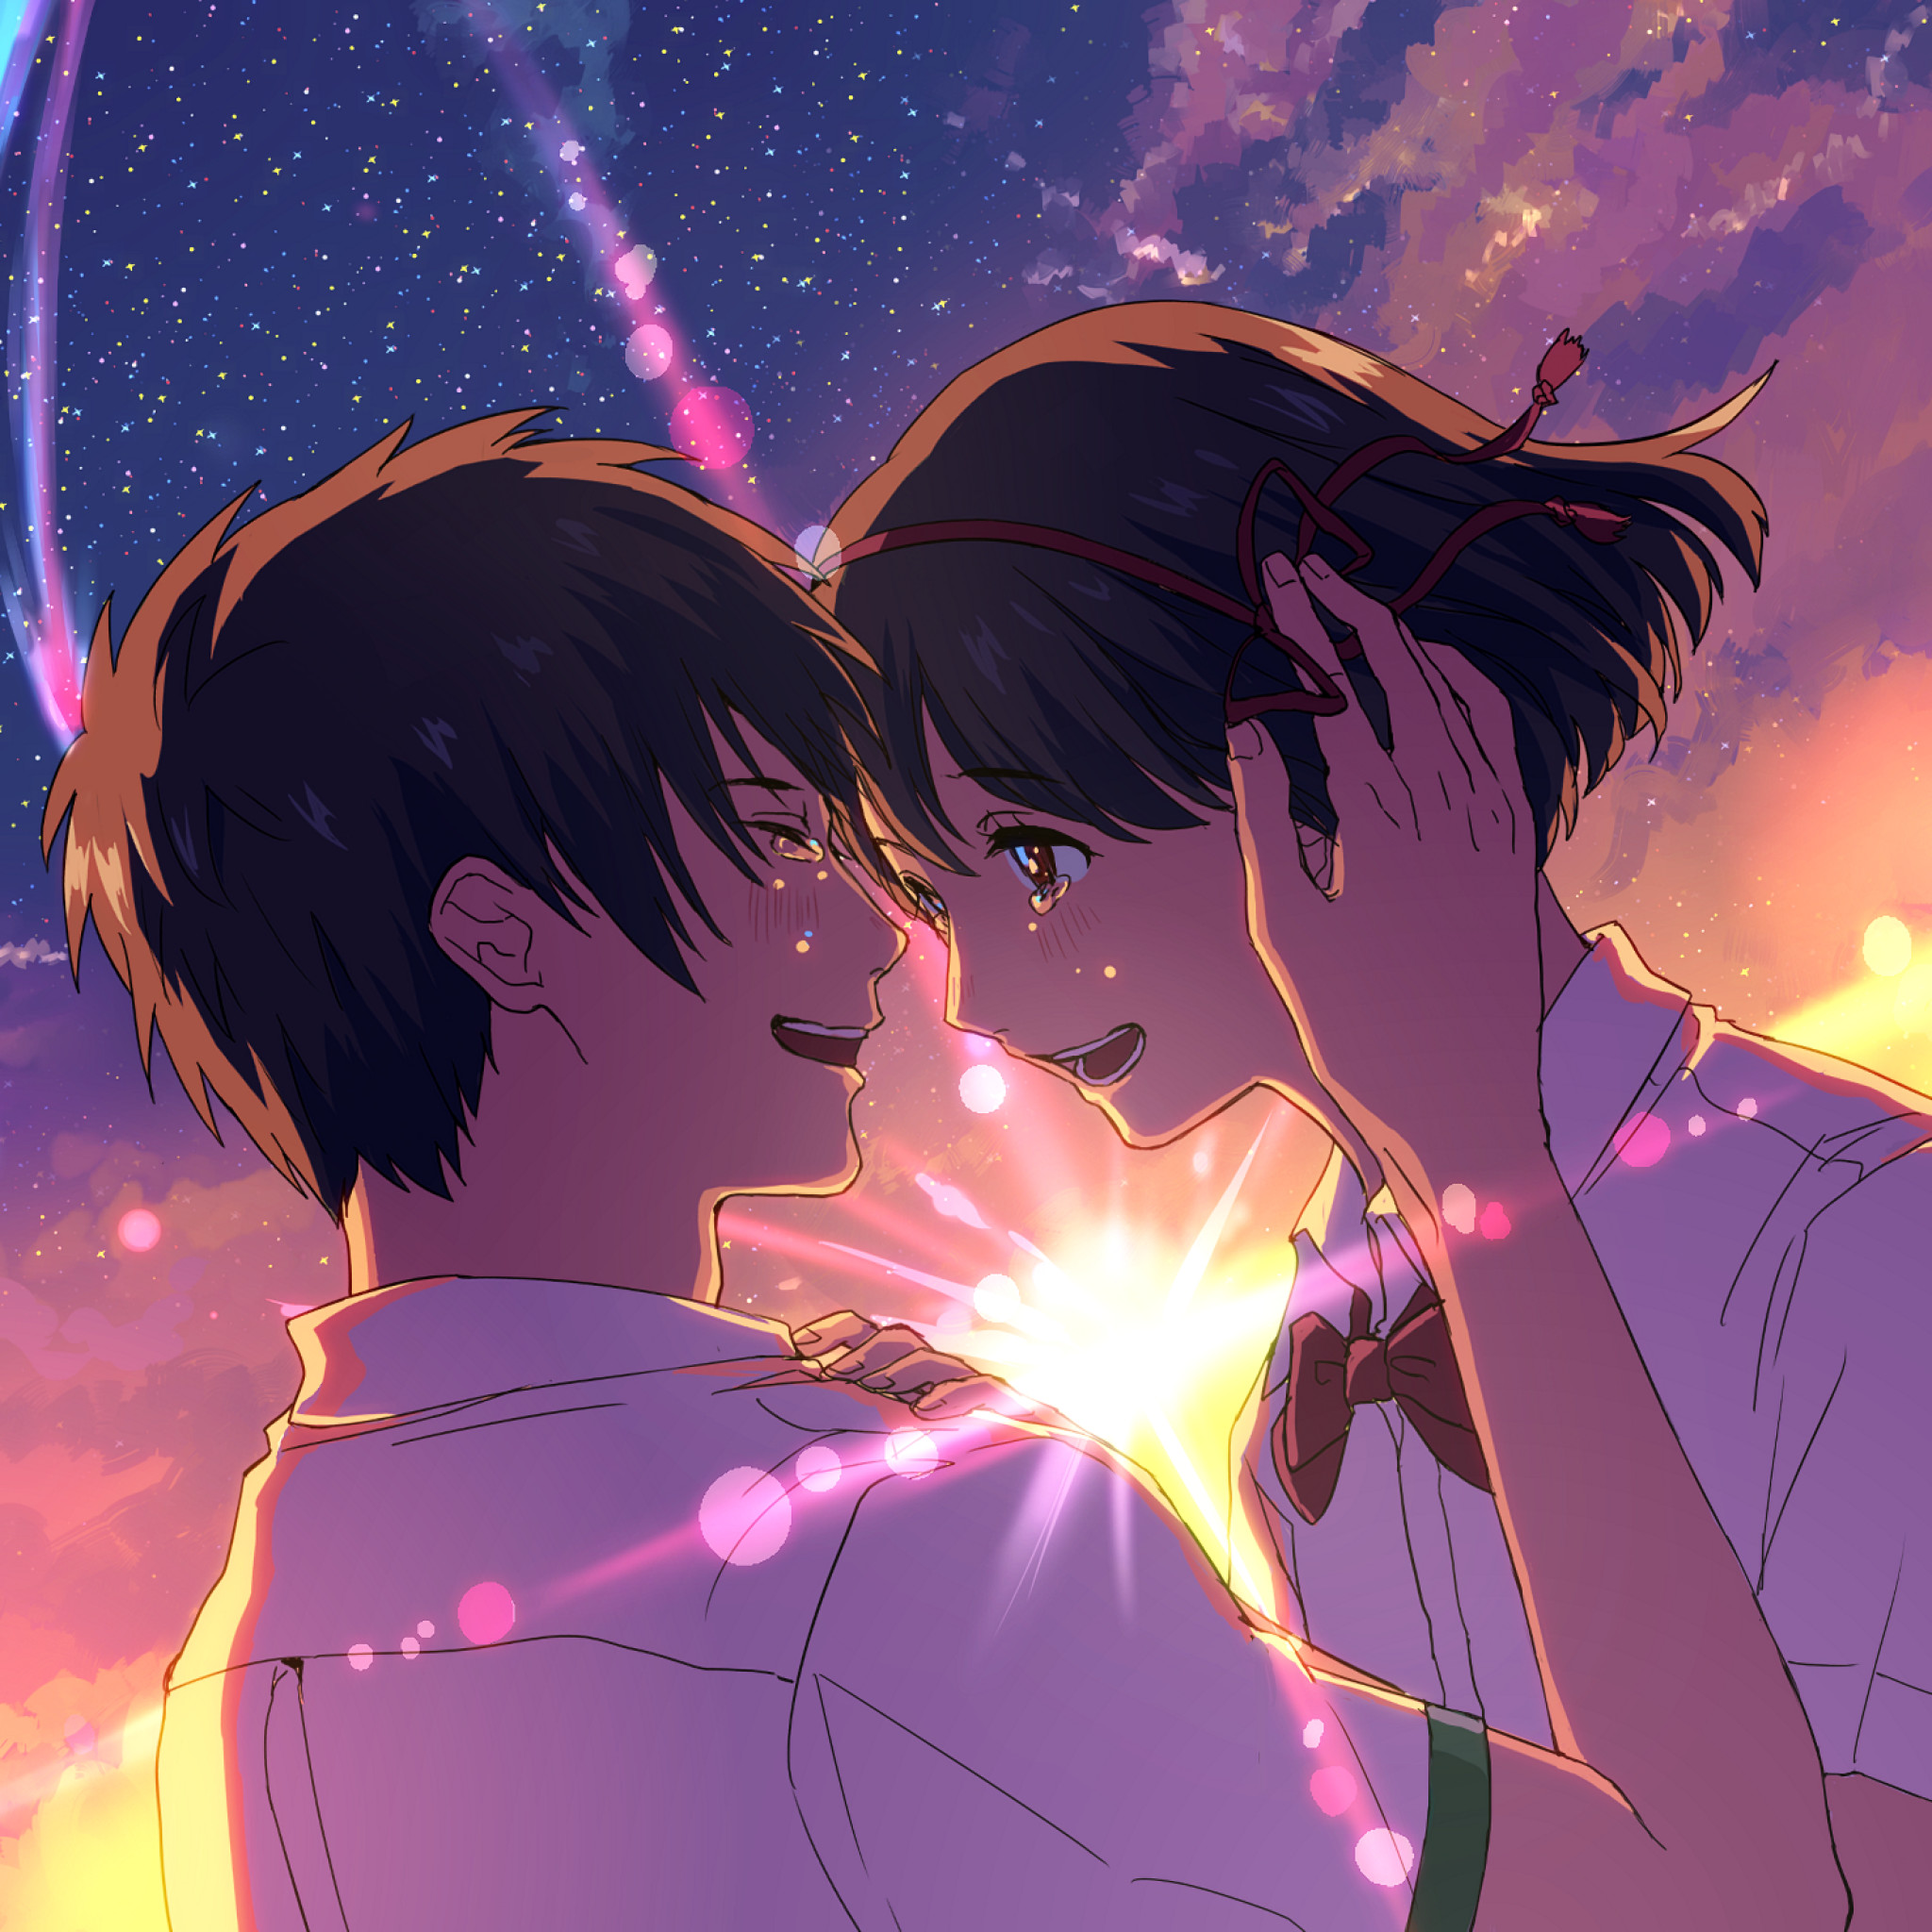 Cute Anime Love Backgrounds